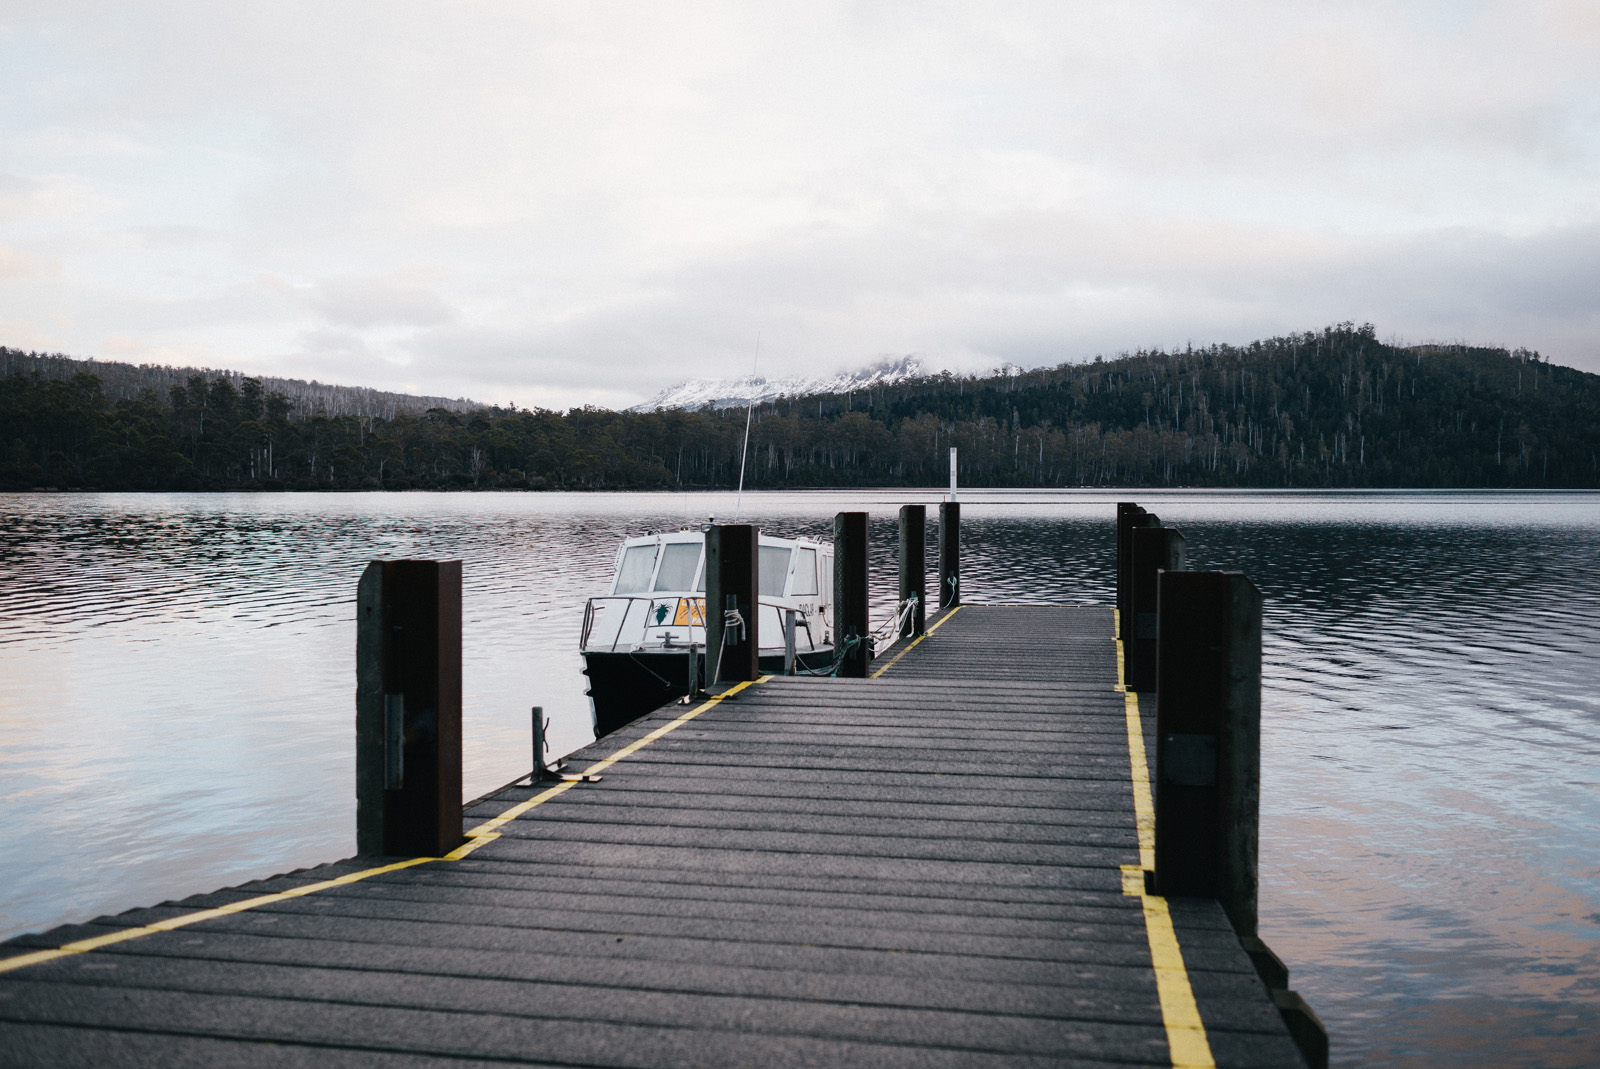 20150907_TasmaniaRoadtrip_072256-Nick-Bedford,-Photographer-Australia, Lake St Claire, Leica M Typ 240, Road Trip, Summarit 35mm, Tasmania, Travel, VSCO Film.jpg